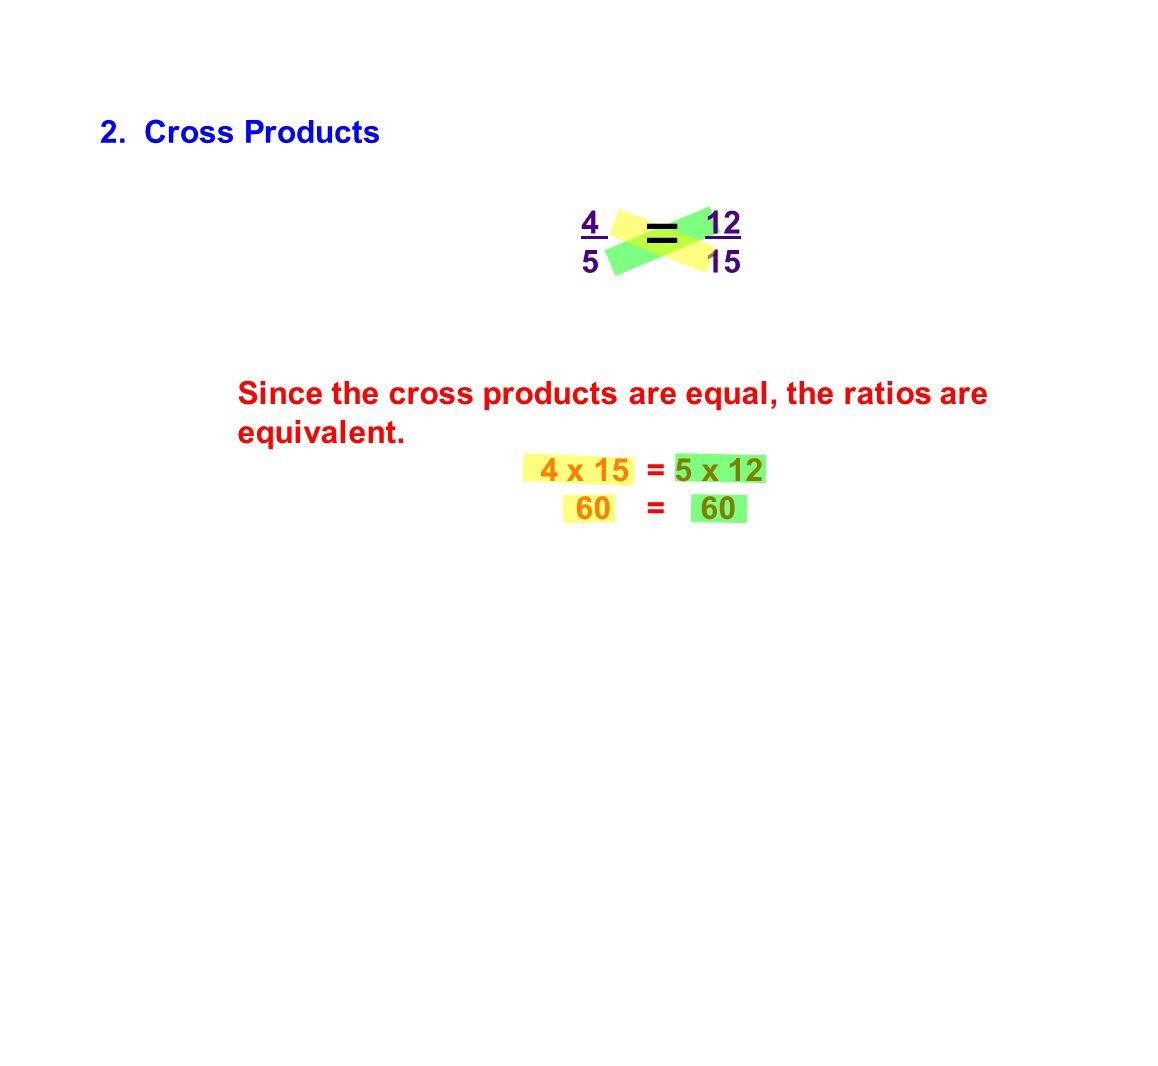 4 12 5 15 Since the cross products are equal, the ratios are equivalent.